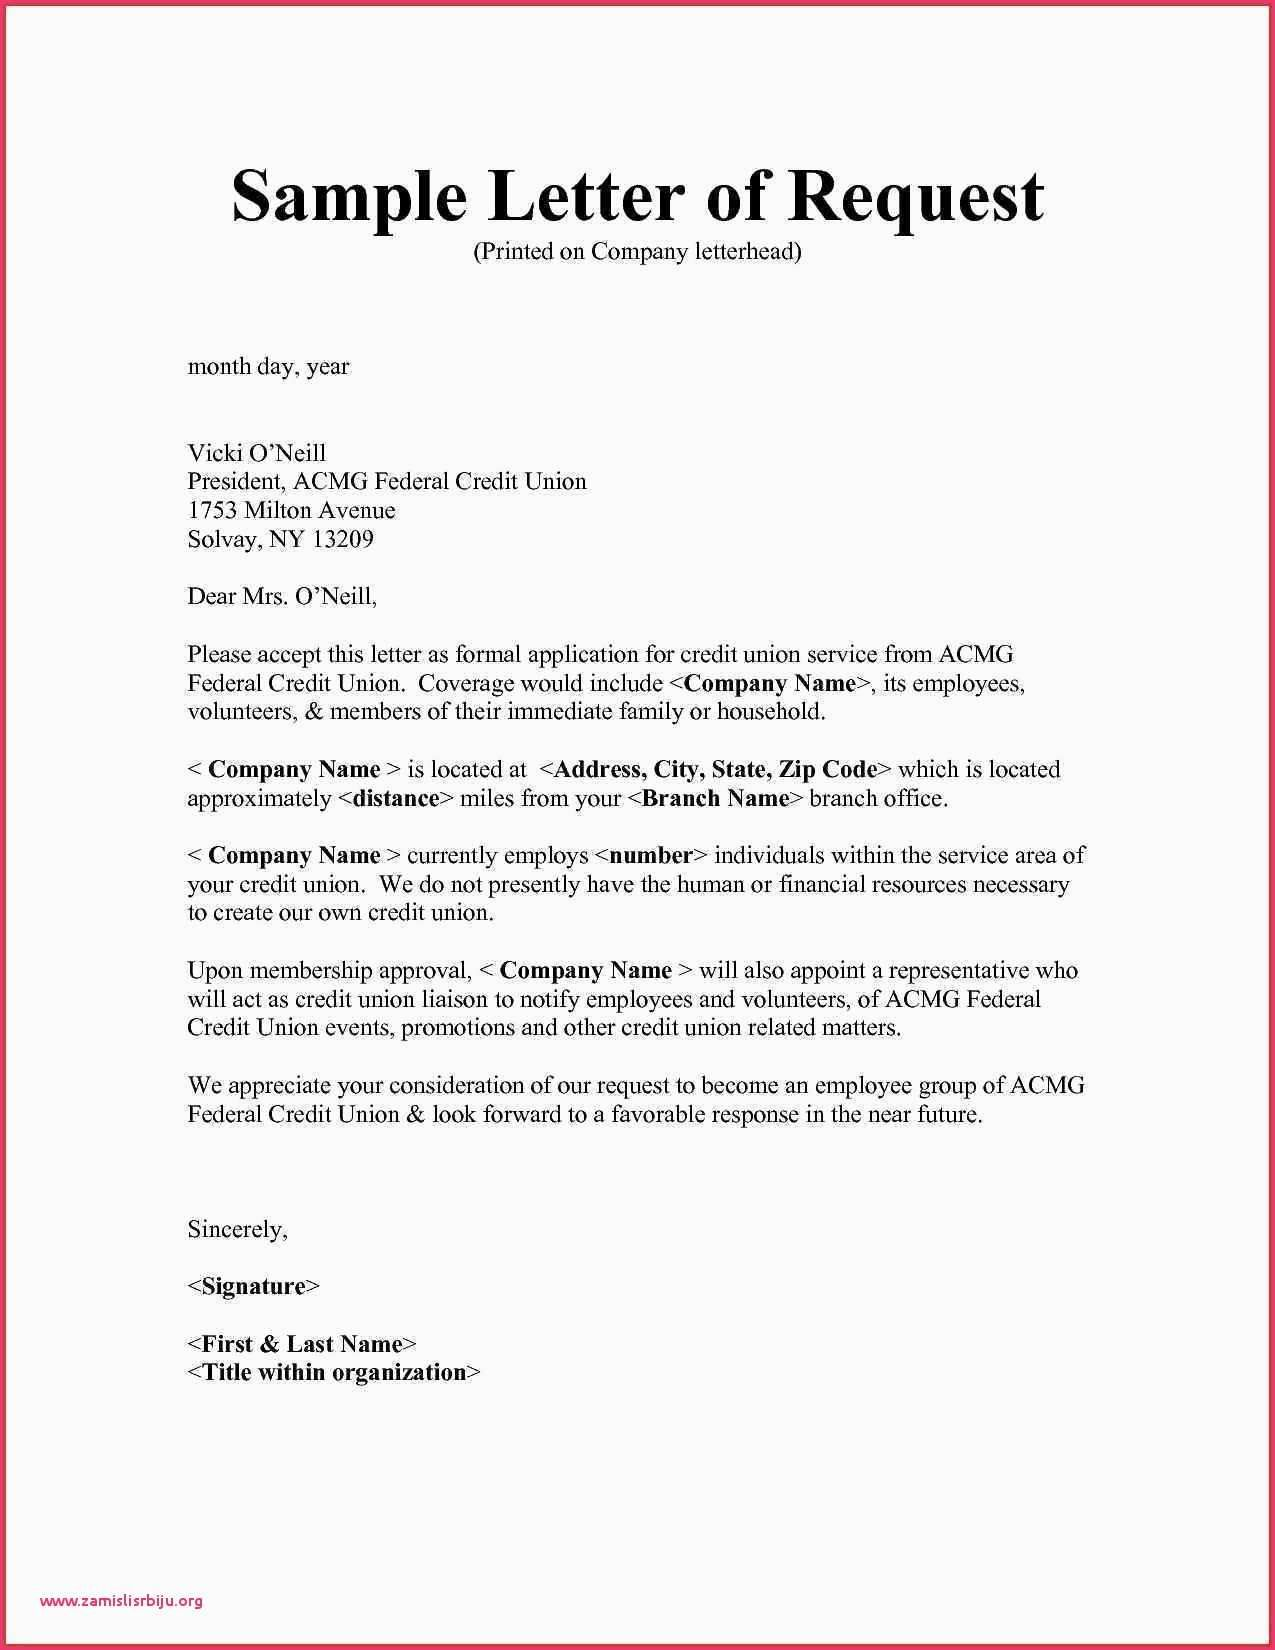 26 Fax Cover Letter Sample For Donation Request Asking Donations